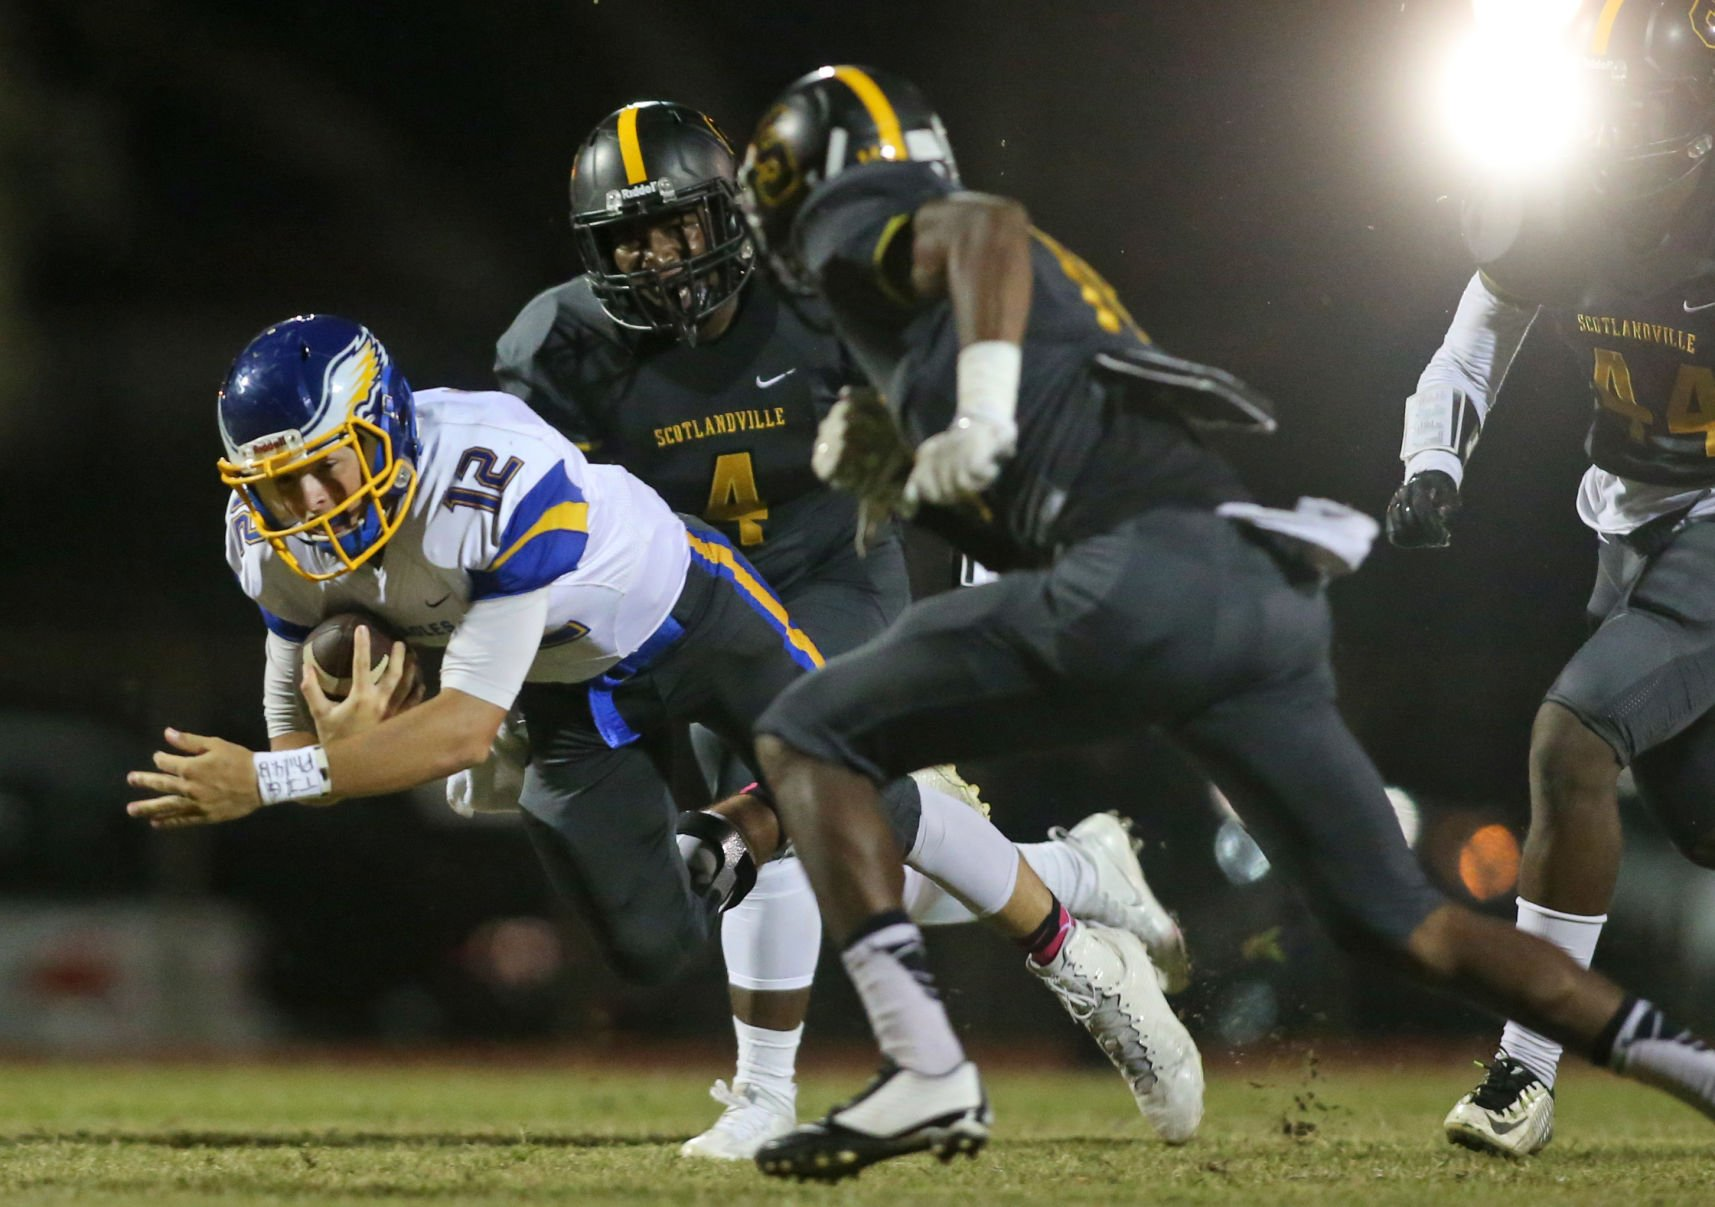 Walker at Scotlandville football | Photo gallery | Local ...